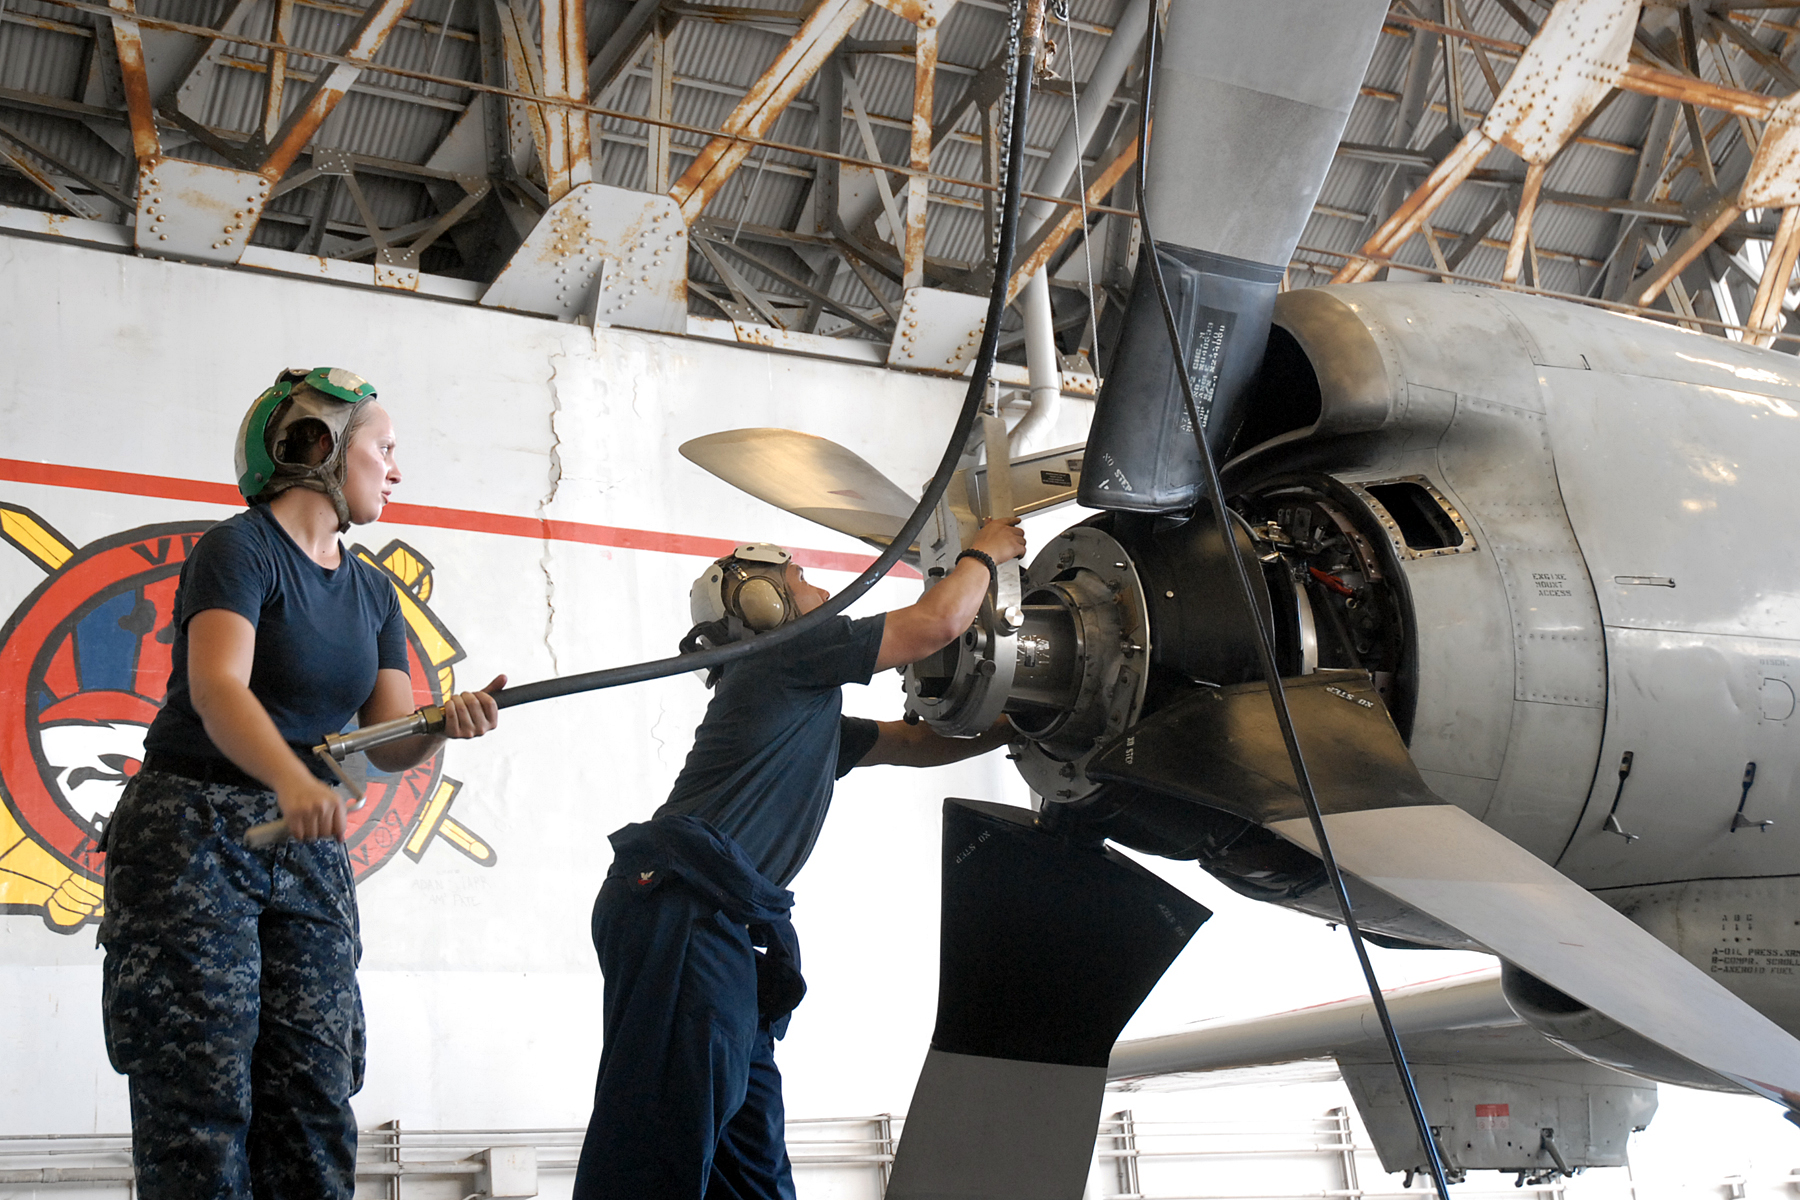 File:US Navy 110822-N-ZN240-070 Aviation Machinist's Mate 2nd ...